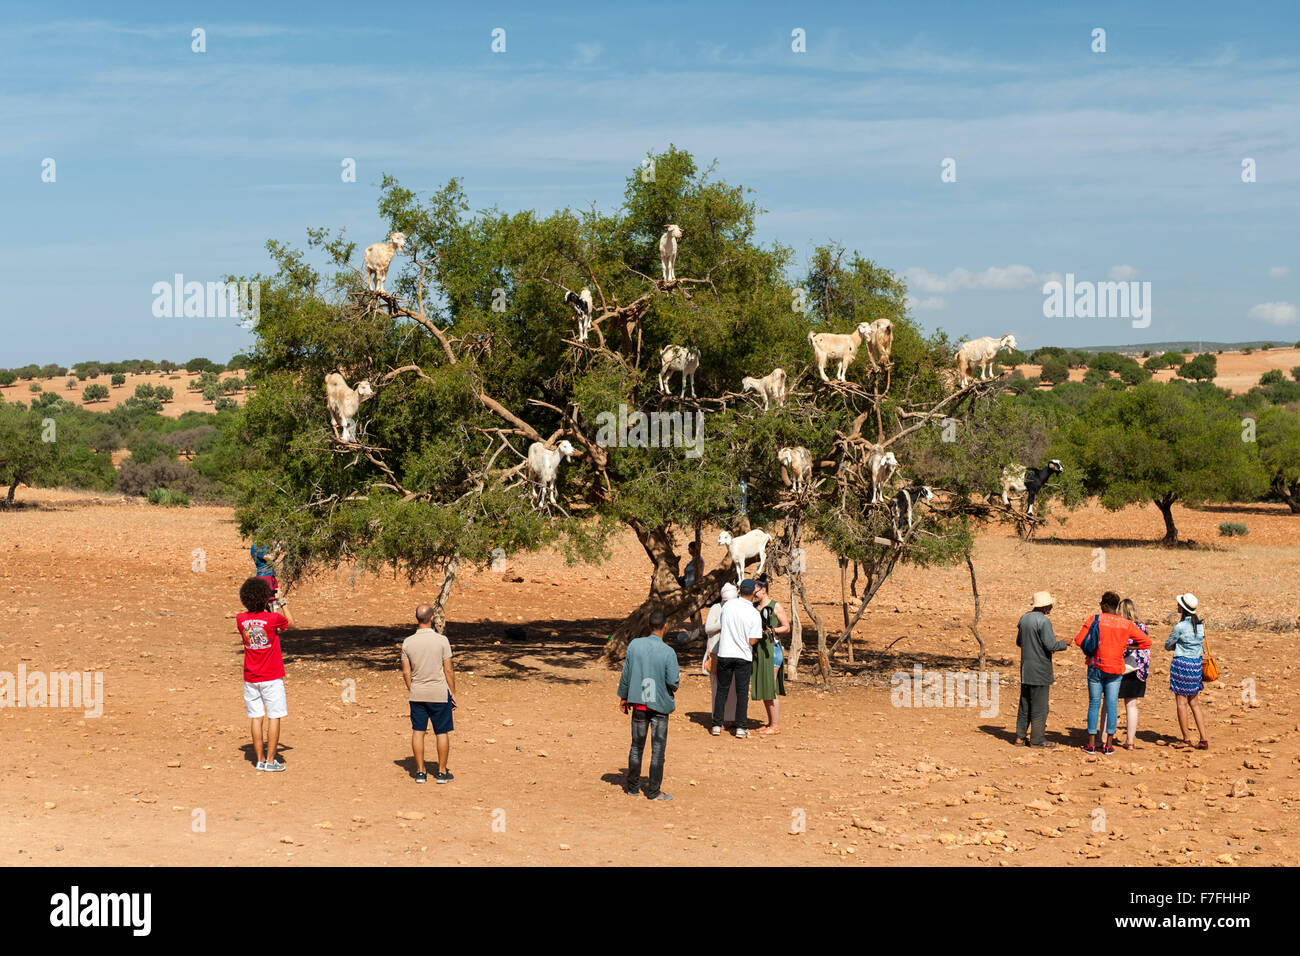 Goats in a tree on the Marrakech to Essaouira road in Morocco. - Stock Image